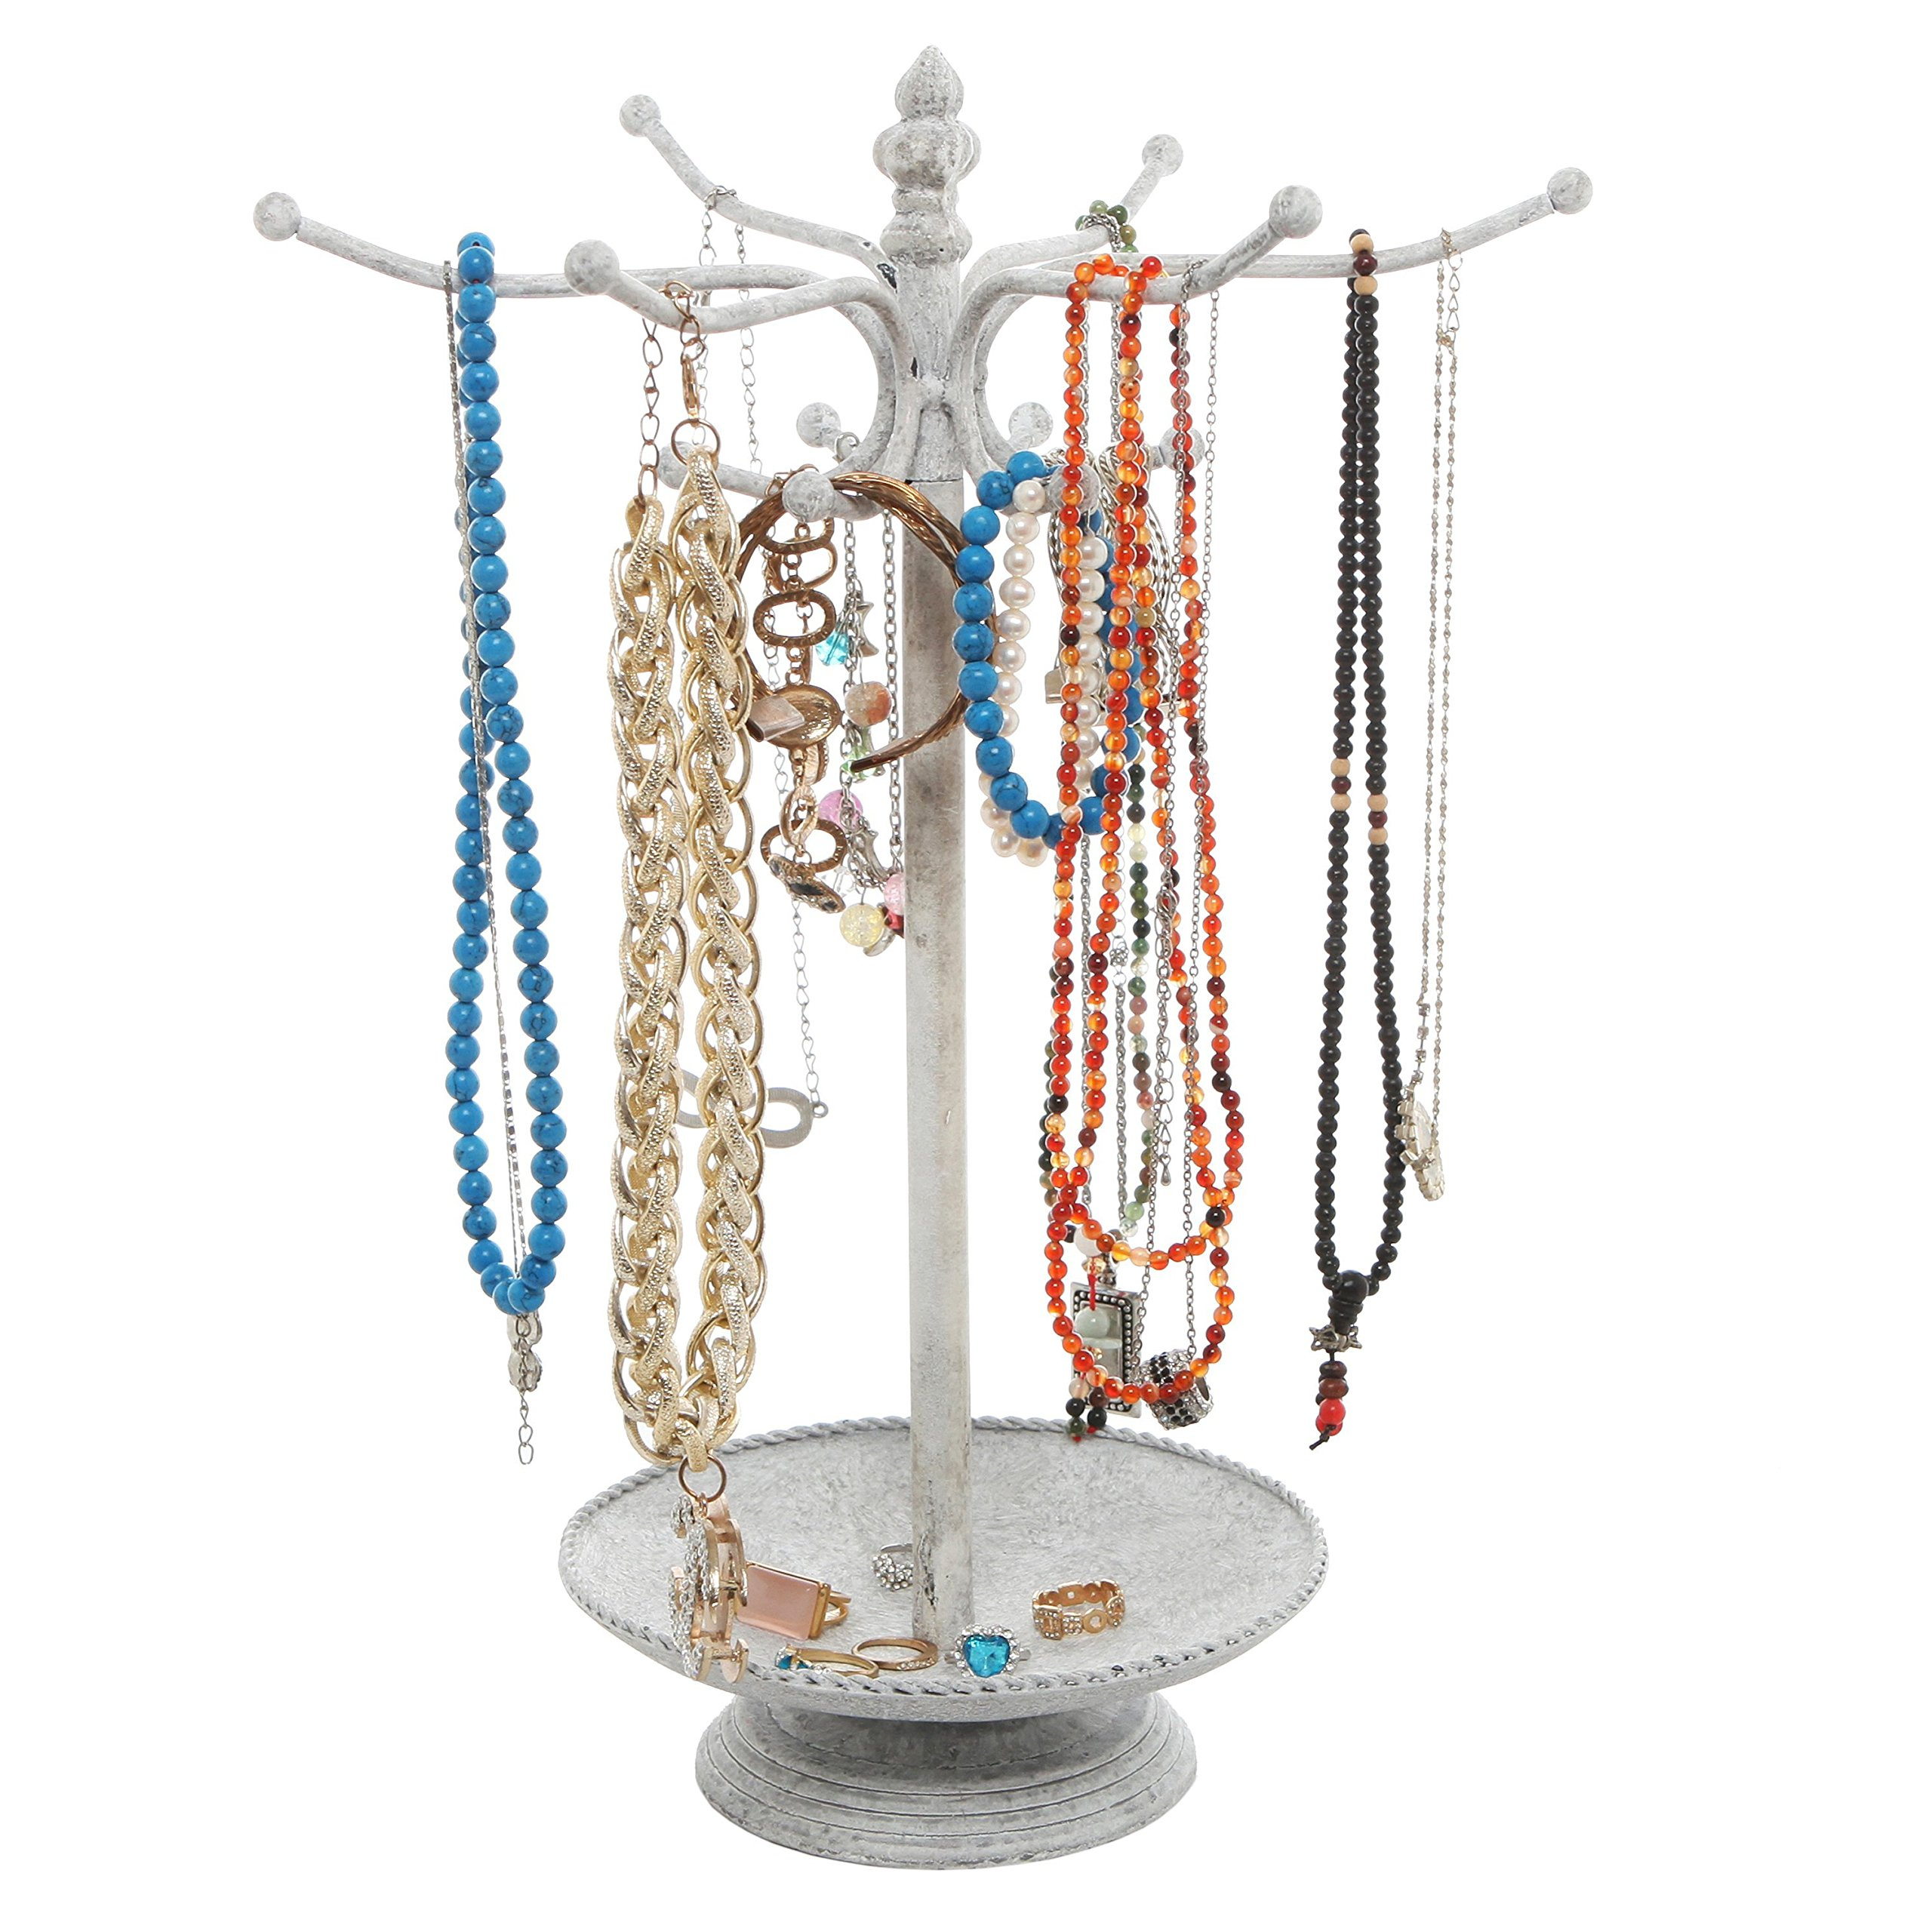 Vintage Style Whitewashed Metal 12 Hook Jewelry Organizer Tree Rack Stand w/ Ring Dish Tray